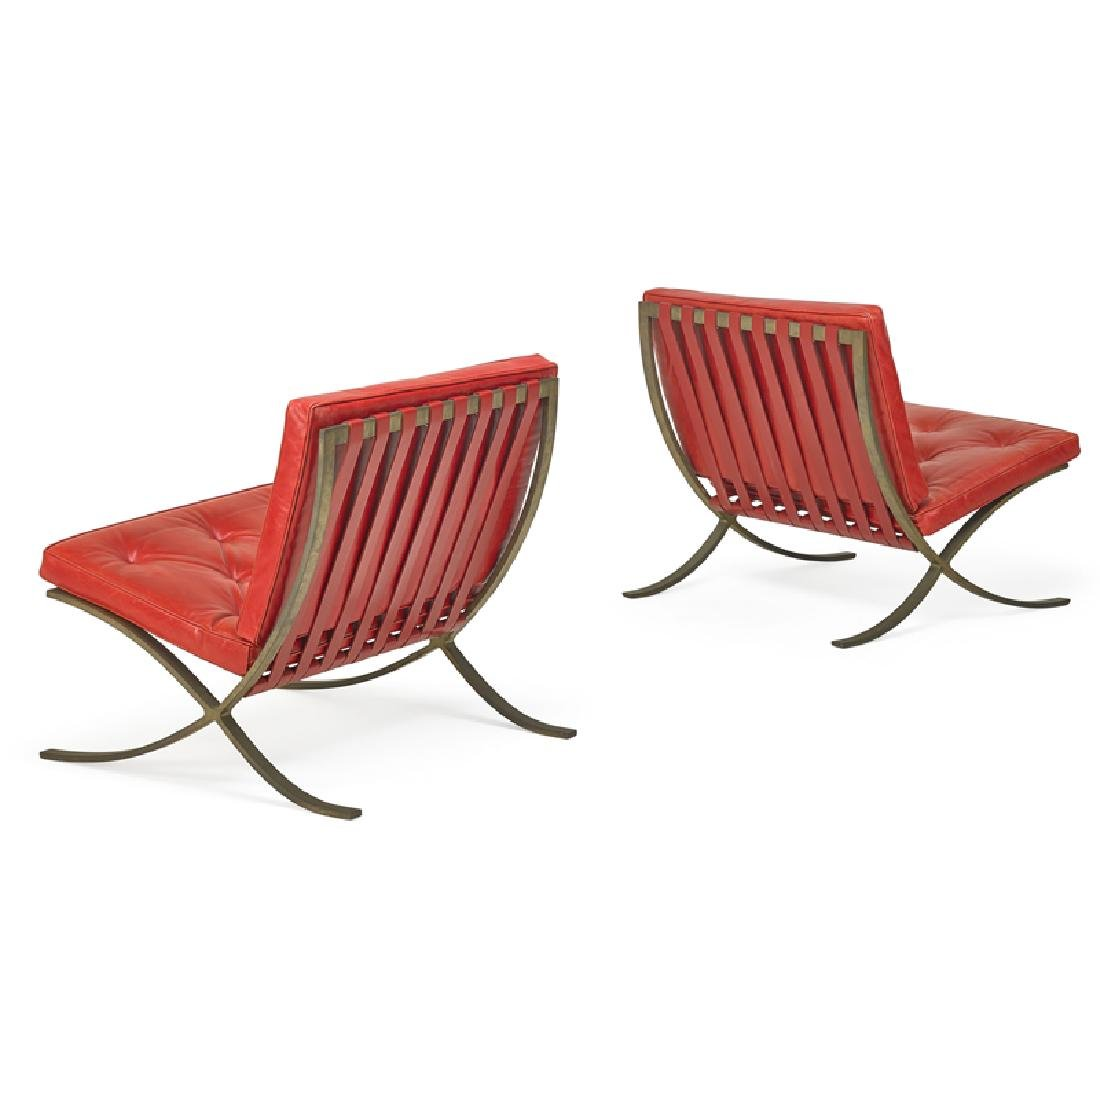 LUDWIG MIES VAN DER ROHE Pair of Barcelona chairs - 2